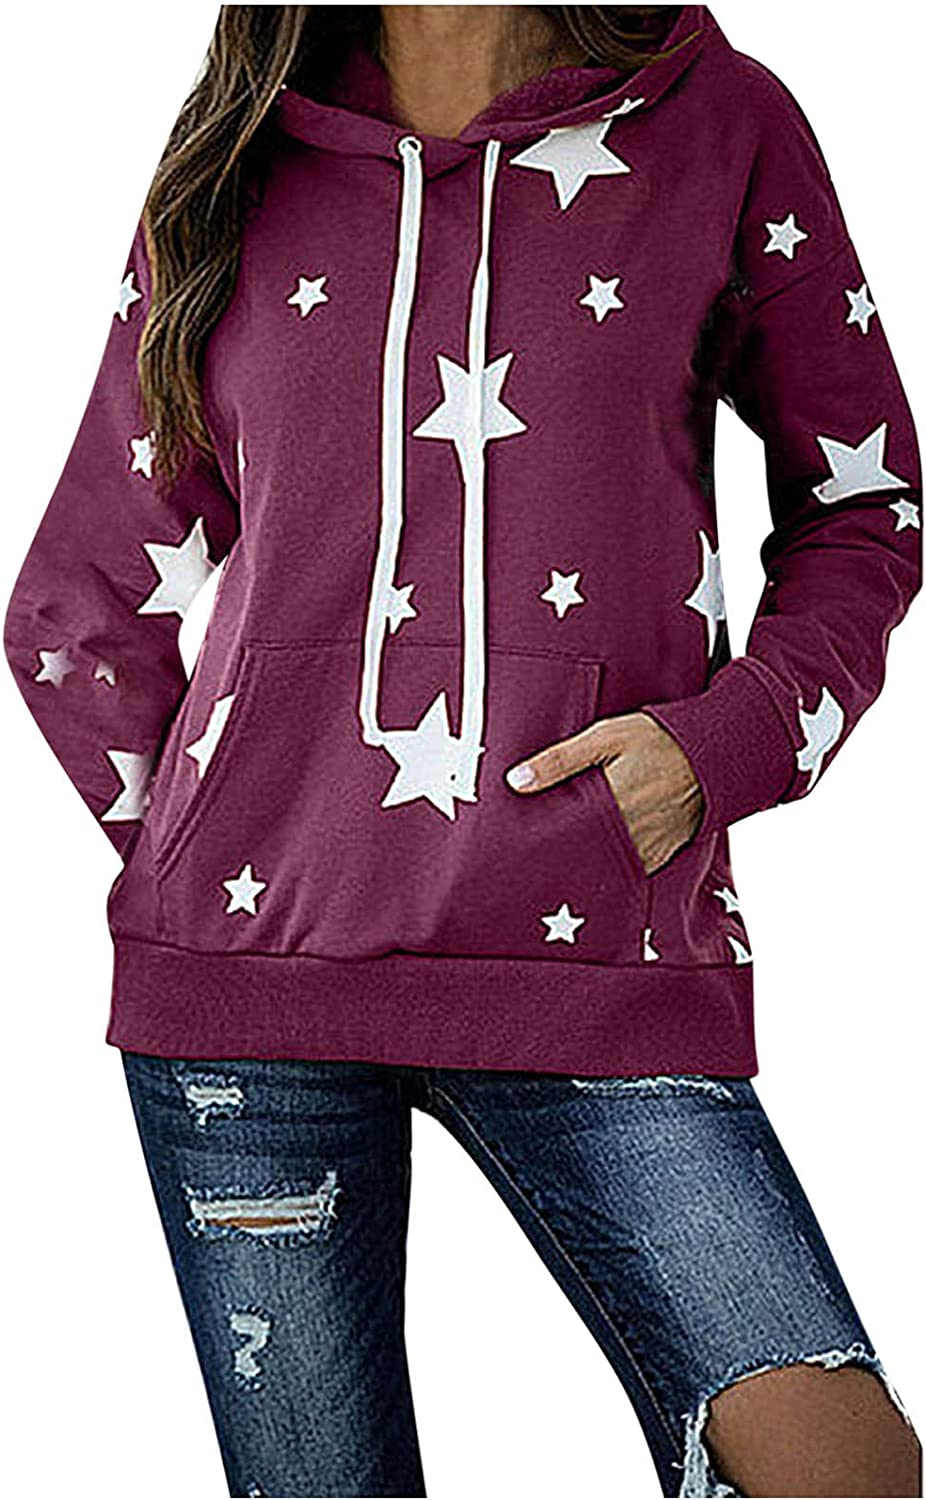 Women Fashion Hoodie Five-Pointed Star Printing Sweatshirt Drawstring Loose Autumn Winter Pullover with Pocket